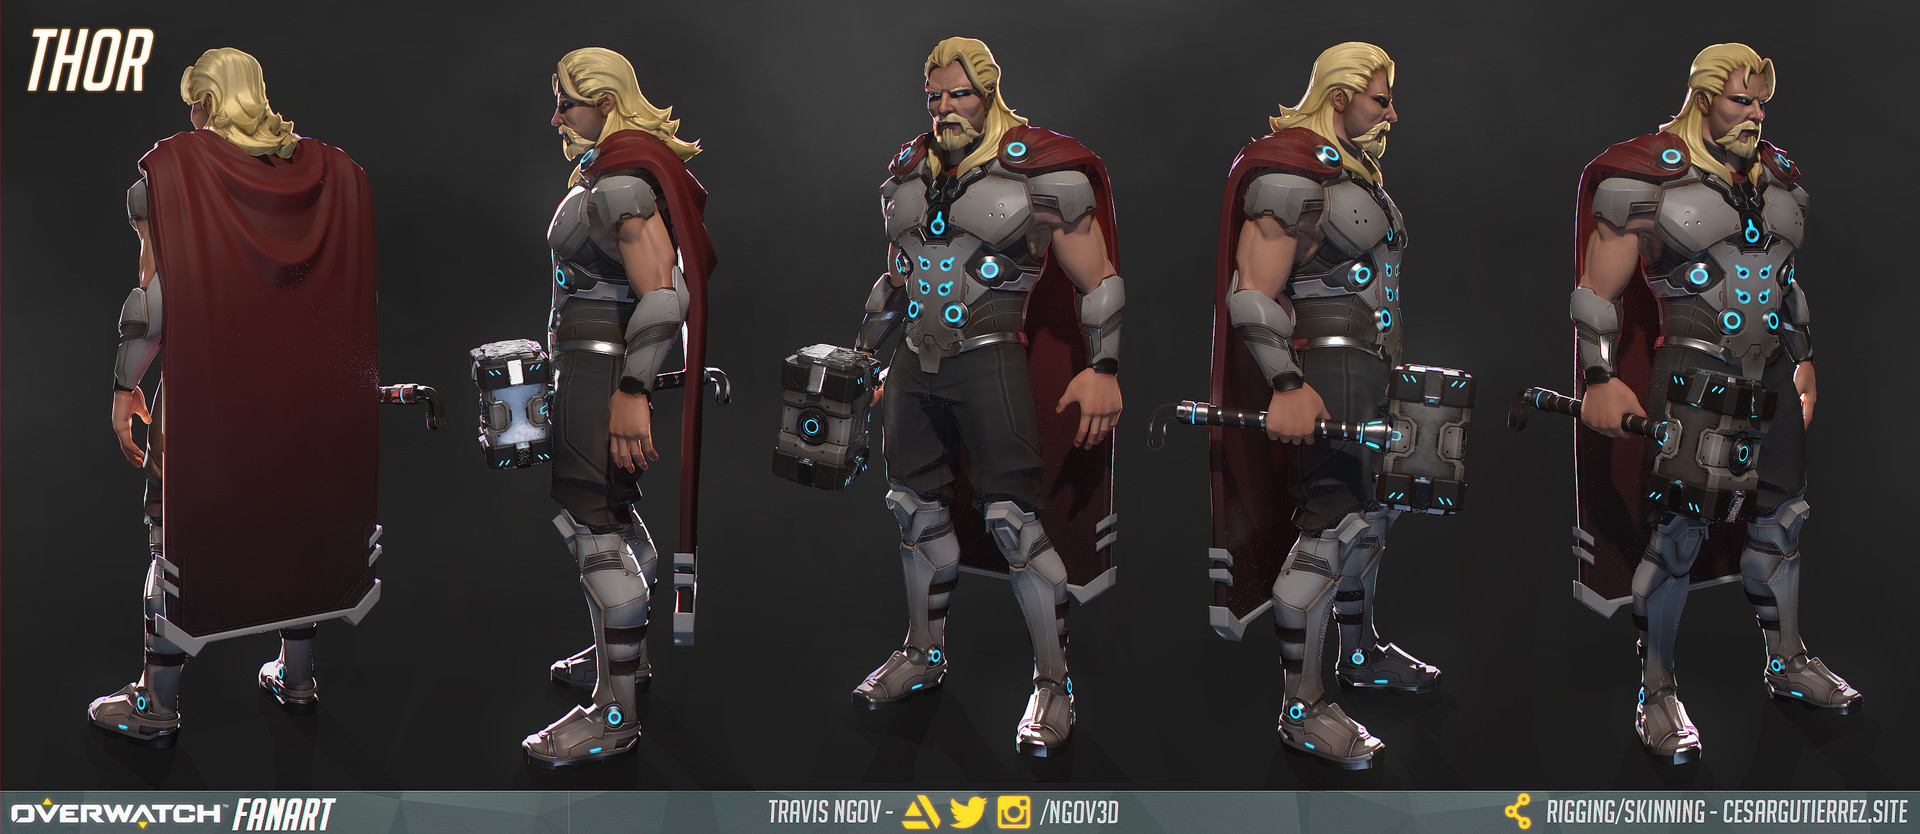 Thor - Turnaround (Posed)